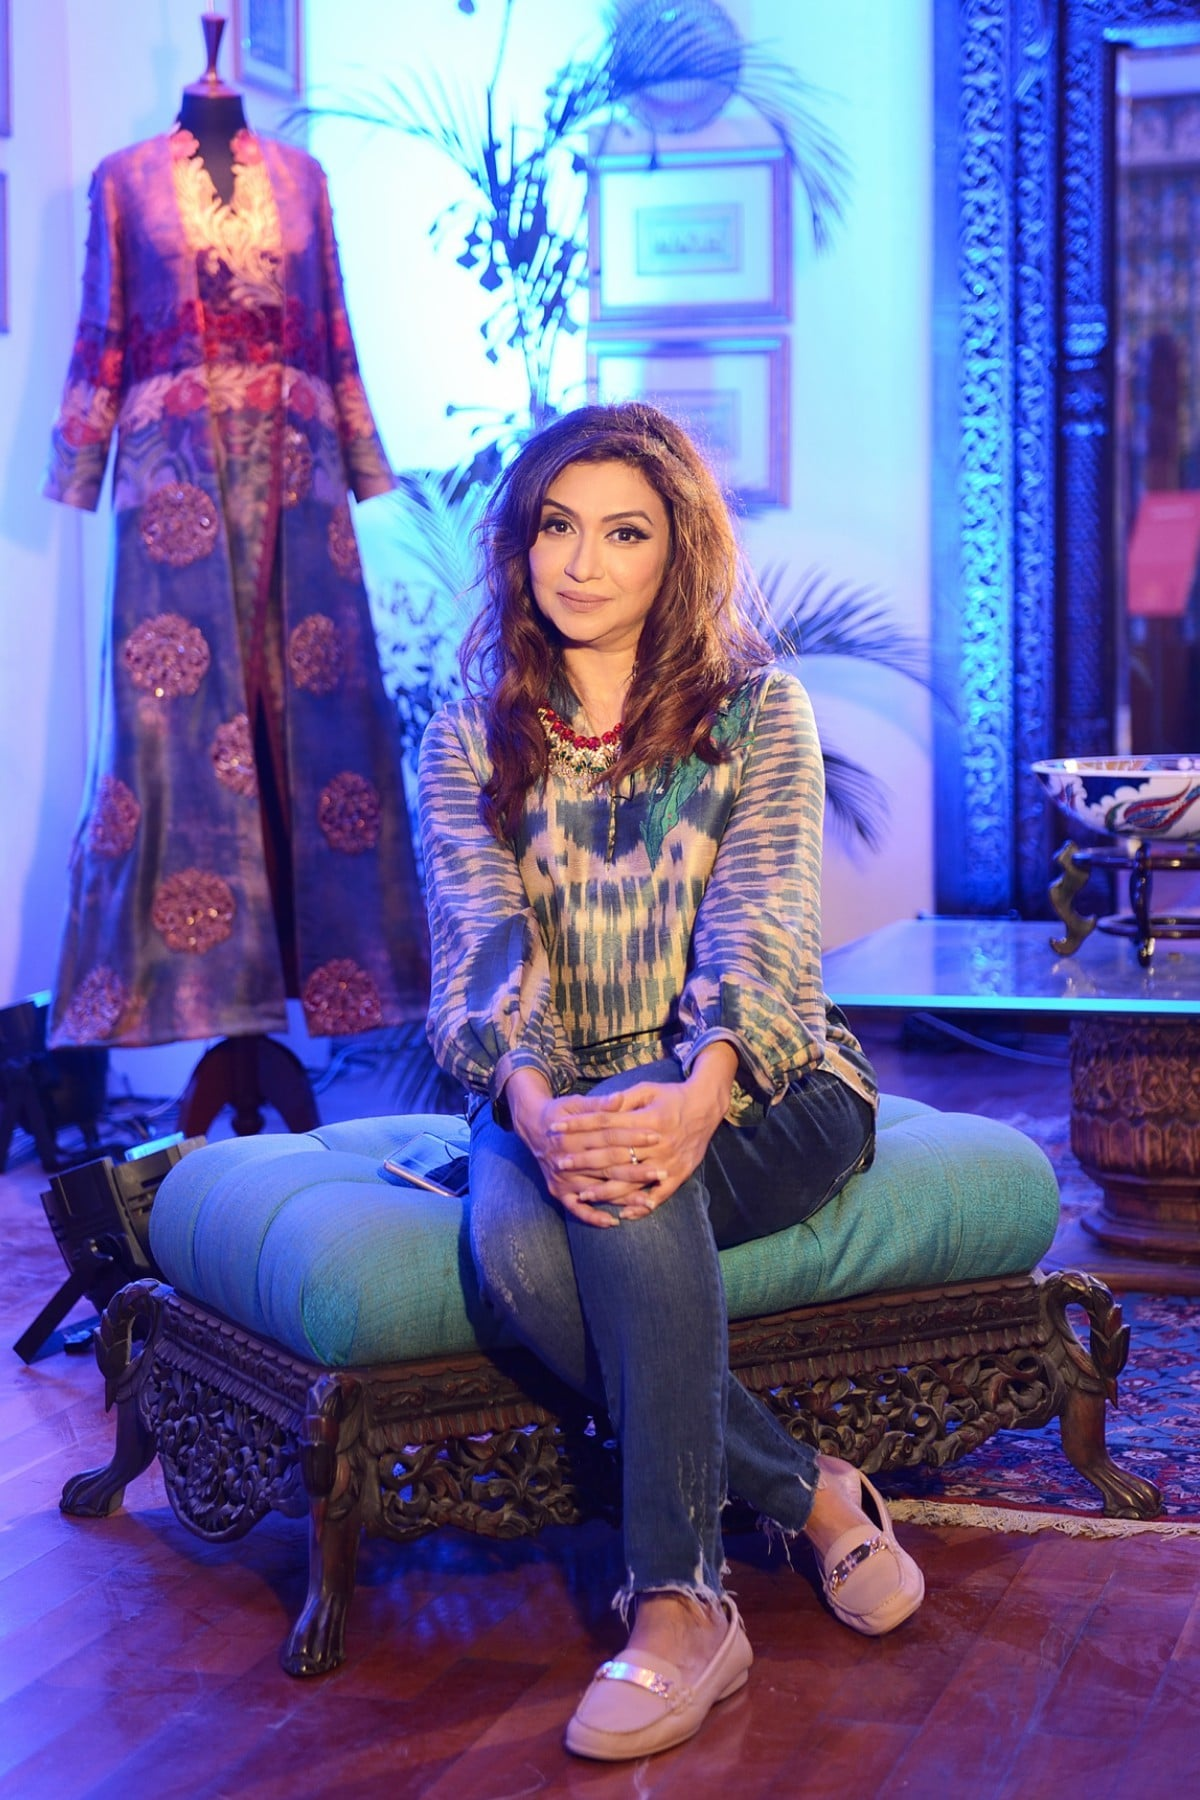 Shamaeel Ansari kicked off FPW Winter/Festive with a solo show at her house